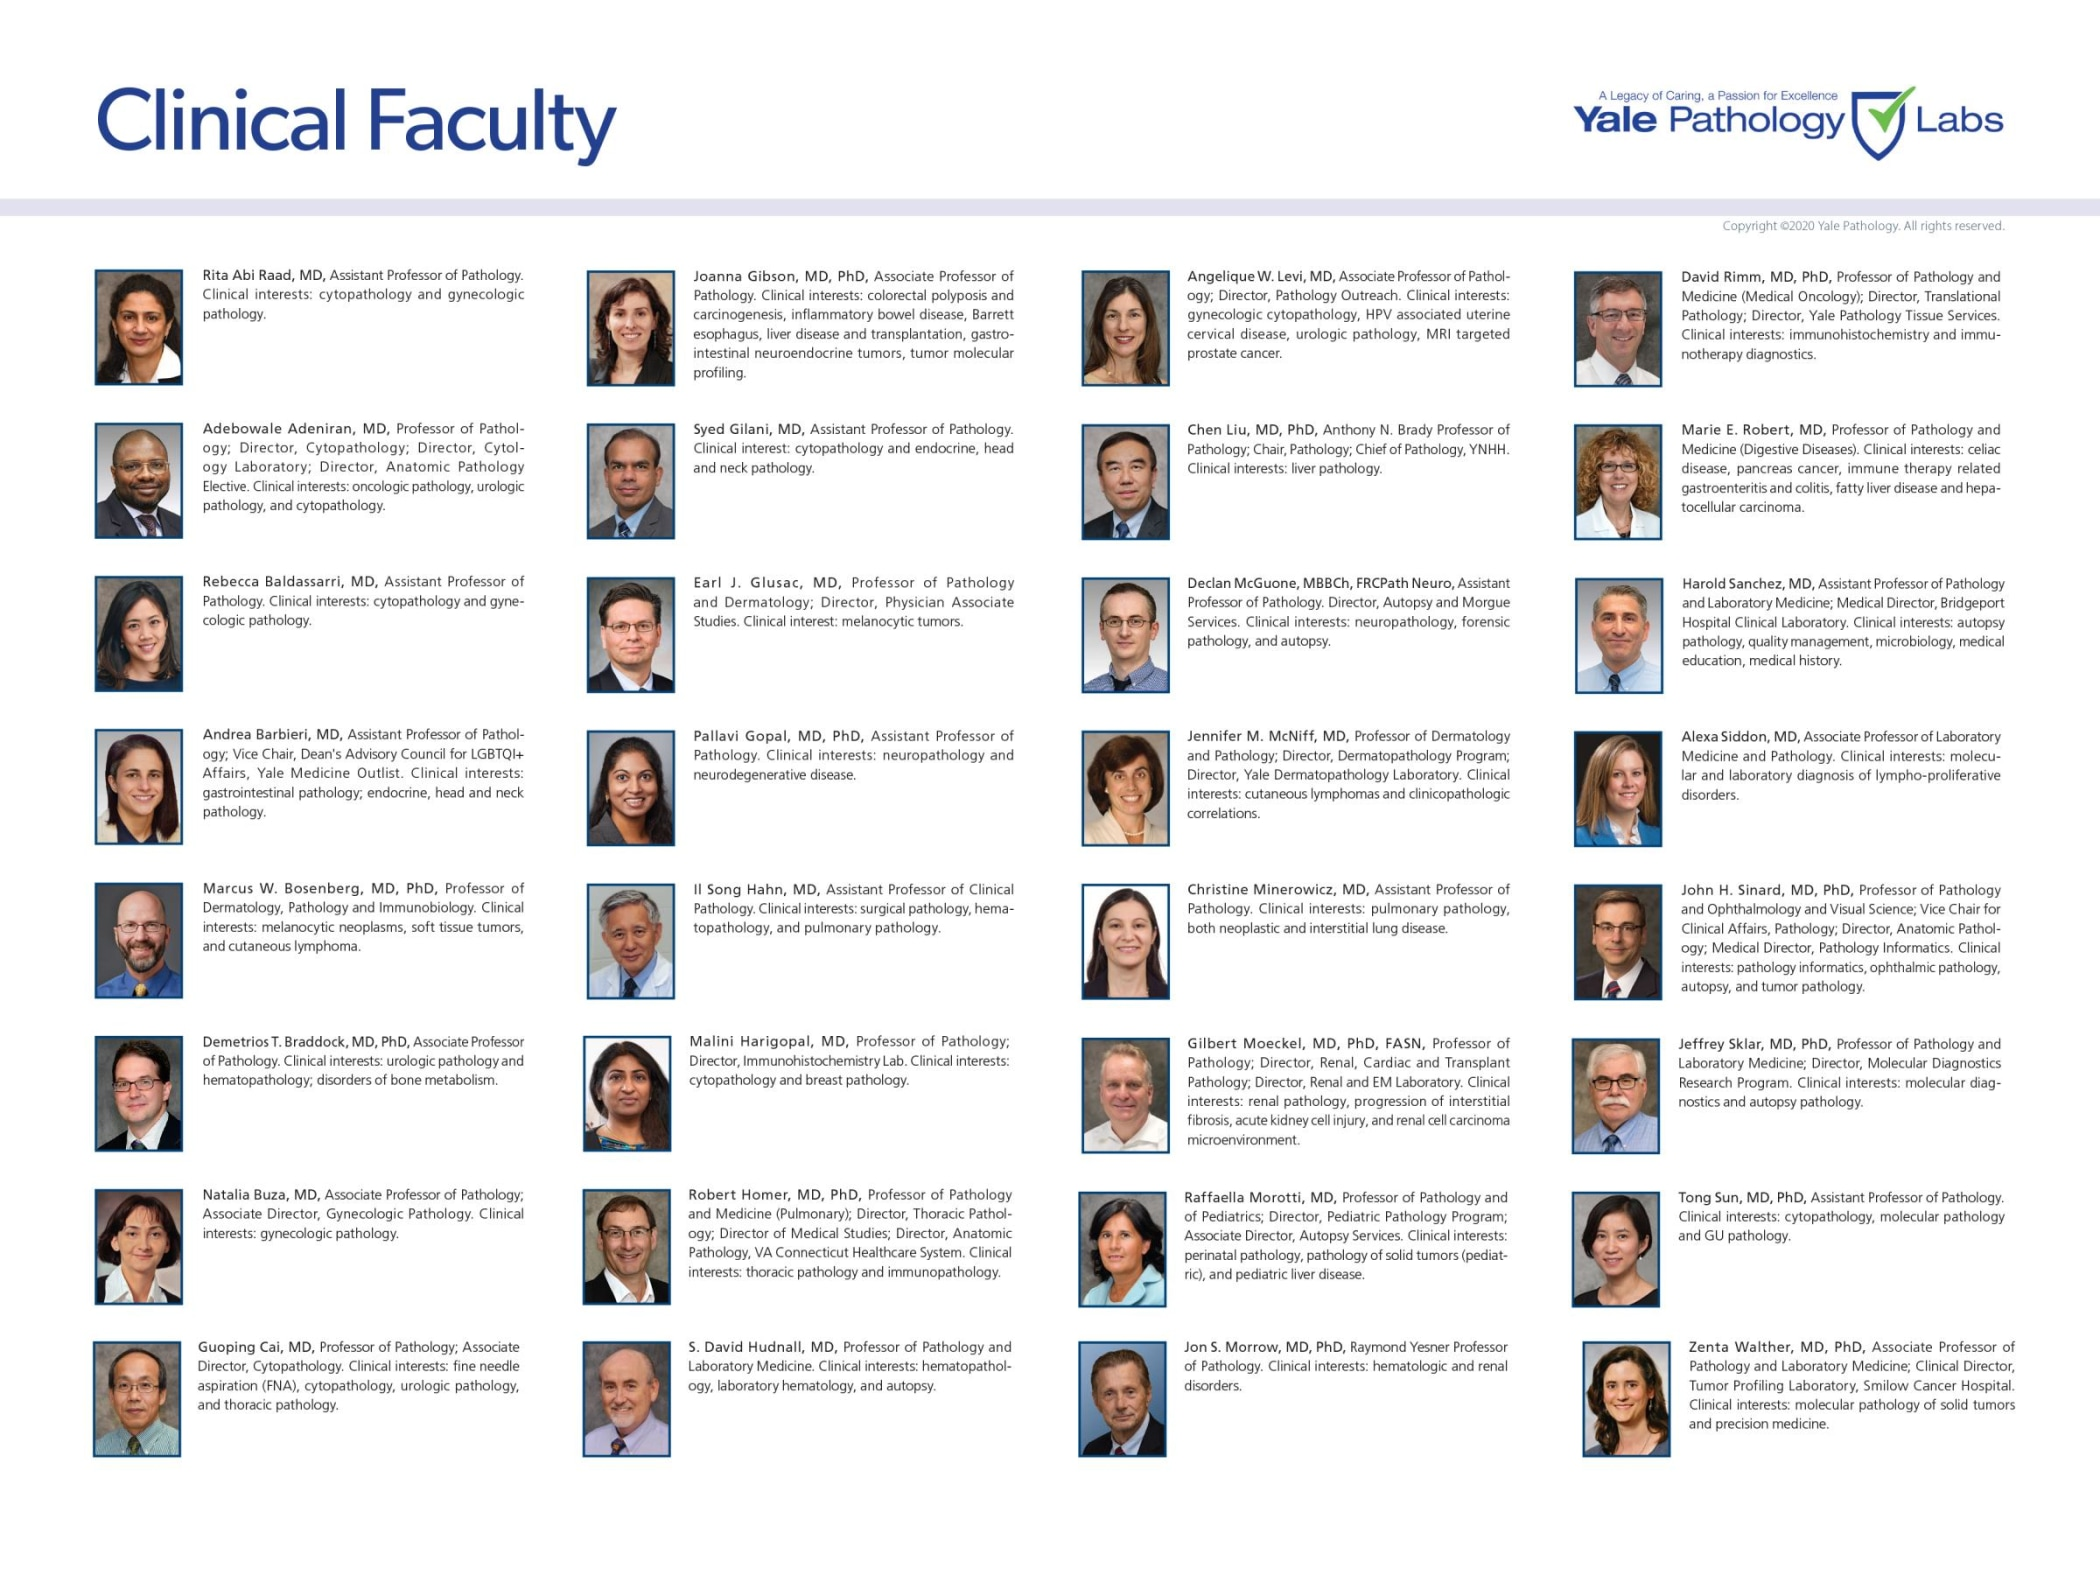 Yale Pathology Labs Calendar 2021 - Clinical Faculty page 1